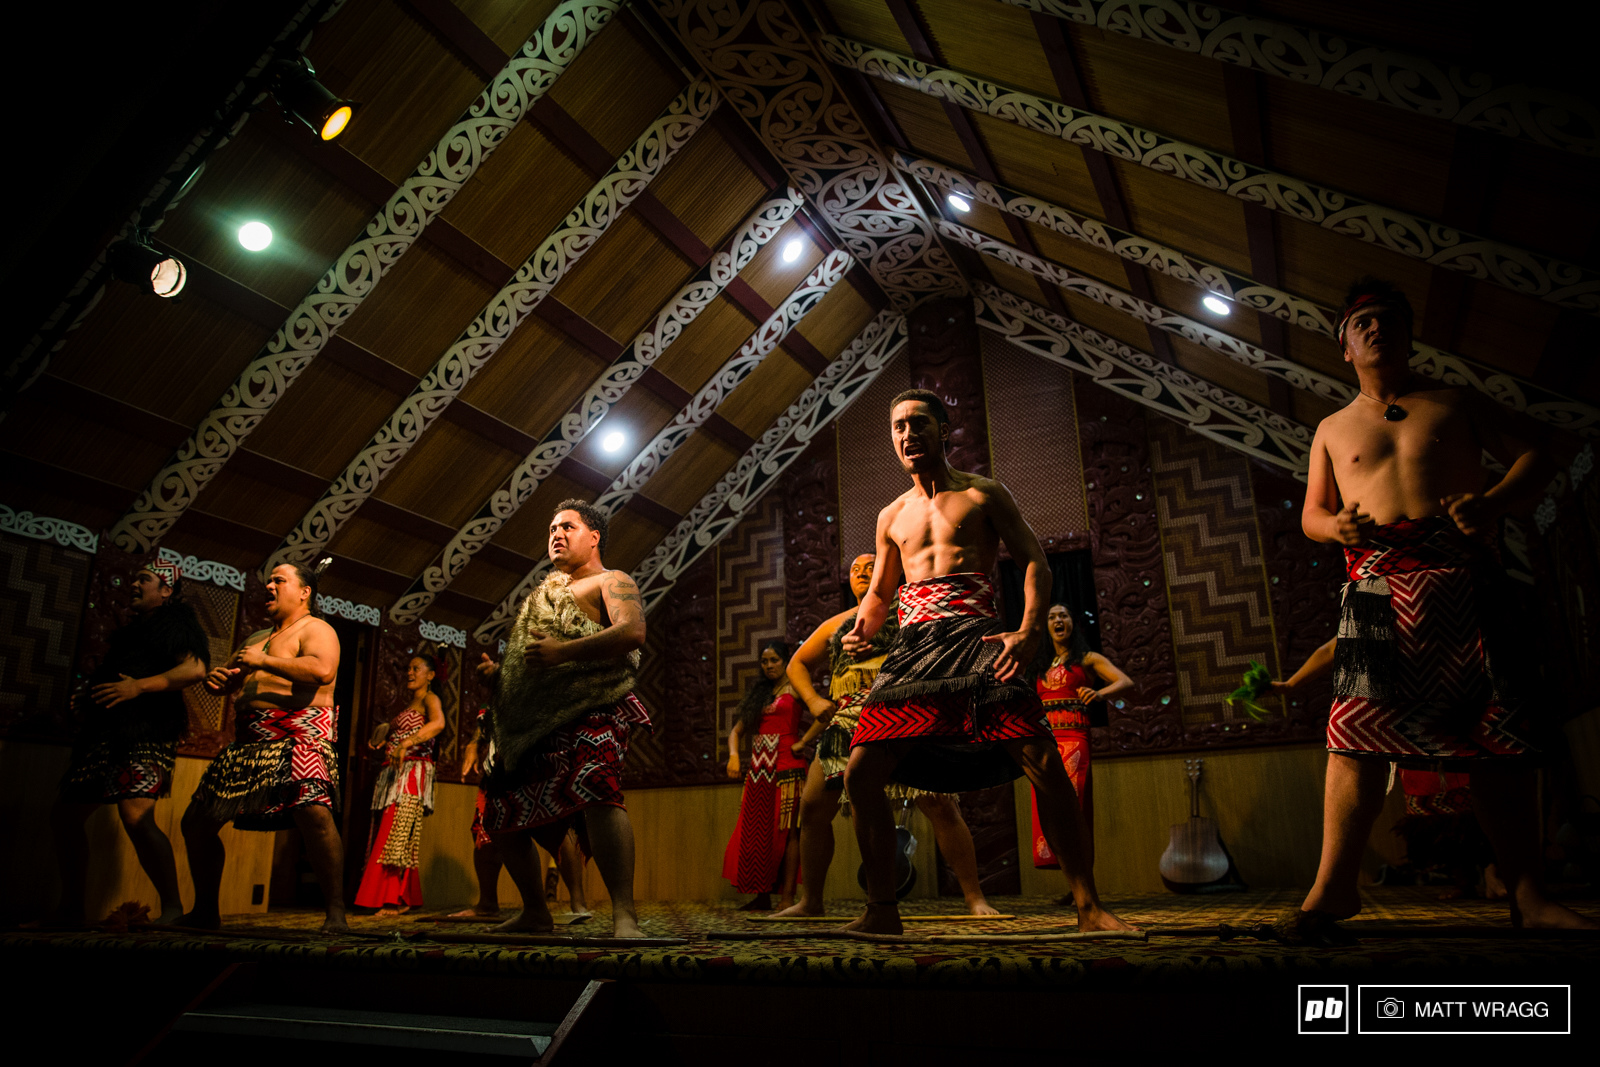 For the opening ceremony of Crankworx we were treated to a traditional Maori ceremony and Haka performance at the Te Paui centre on Tuesday night. If you ve never seen one of them live you should the energy aggression and beauty is unlike anything you will find anywhere else.